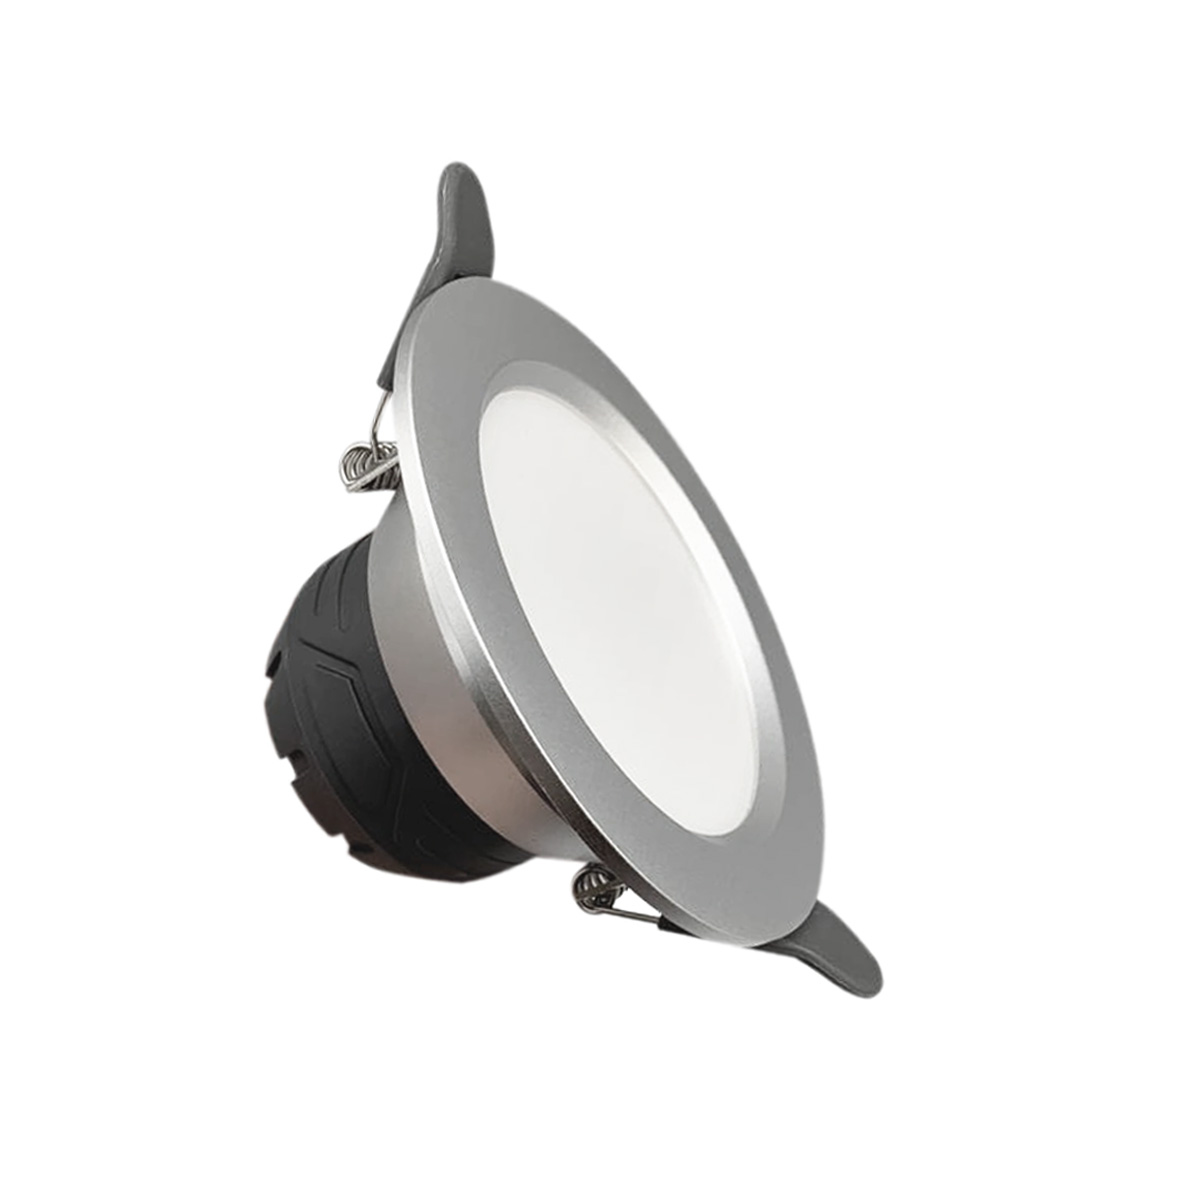 LED spotlight 6W recessed diameter 100mm F. I. 75-95mm SILVER Fi52-6W